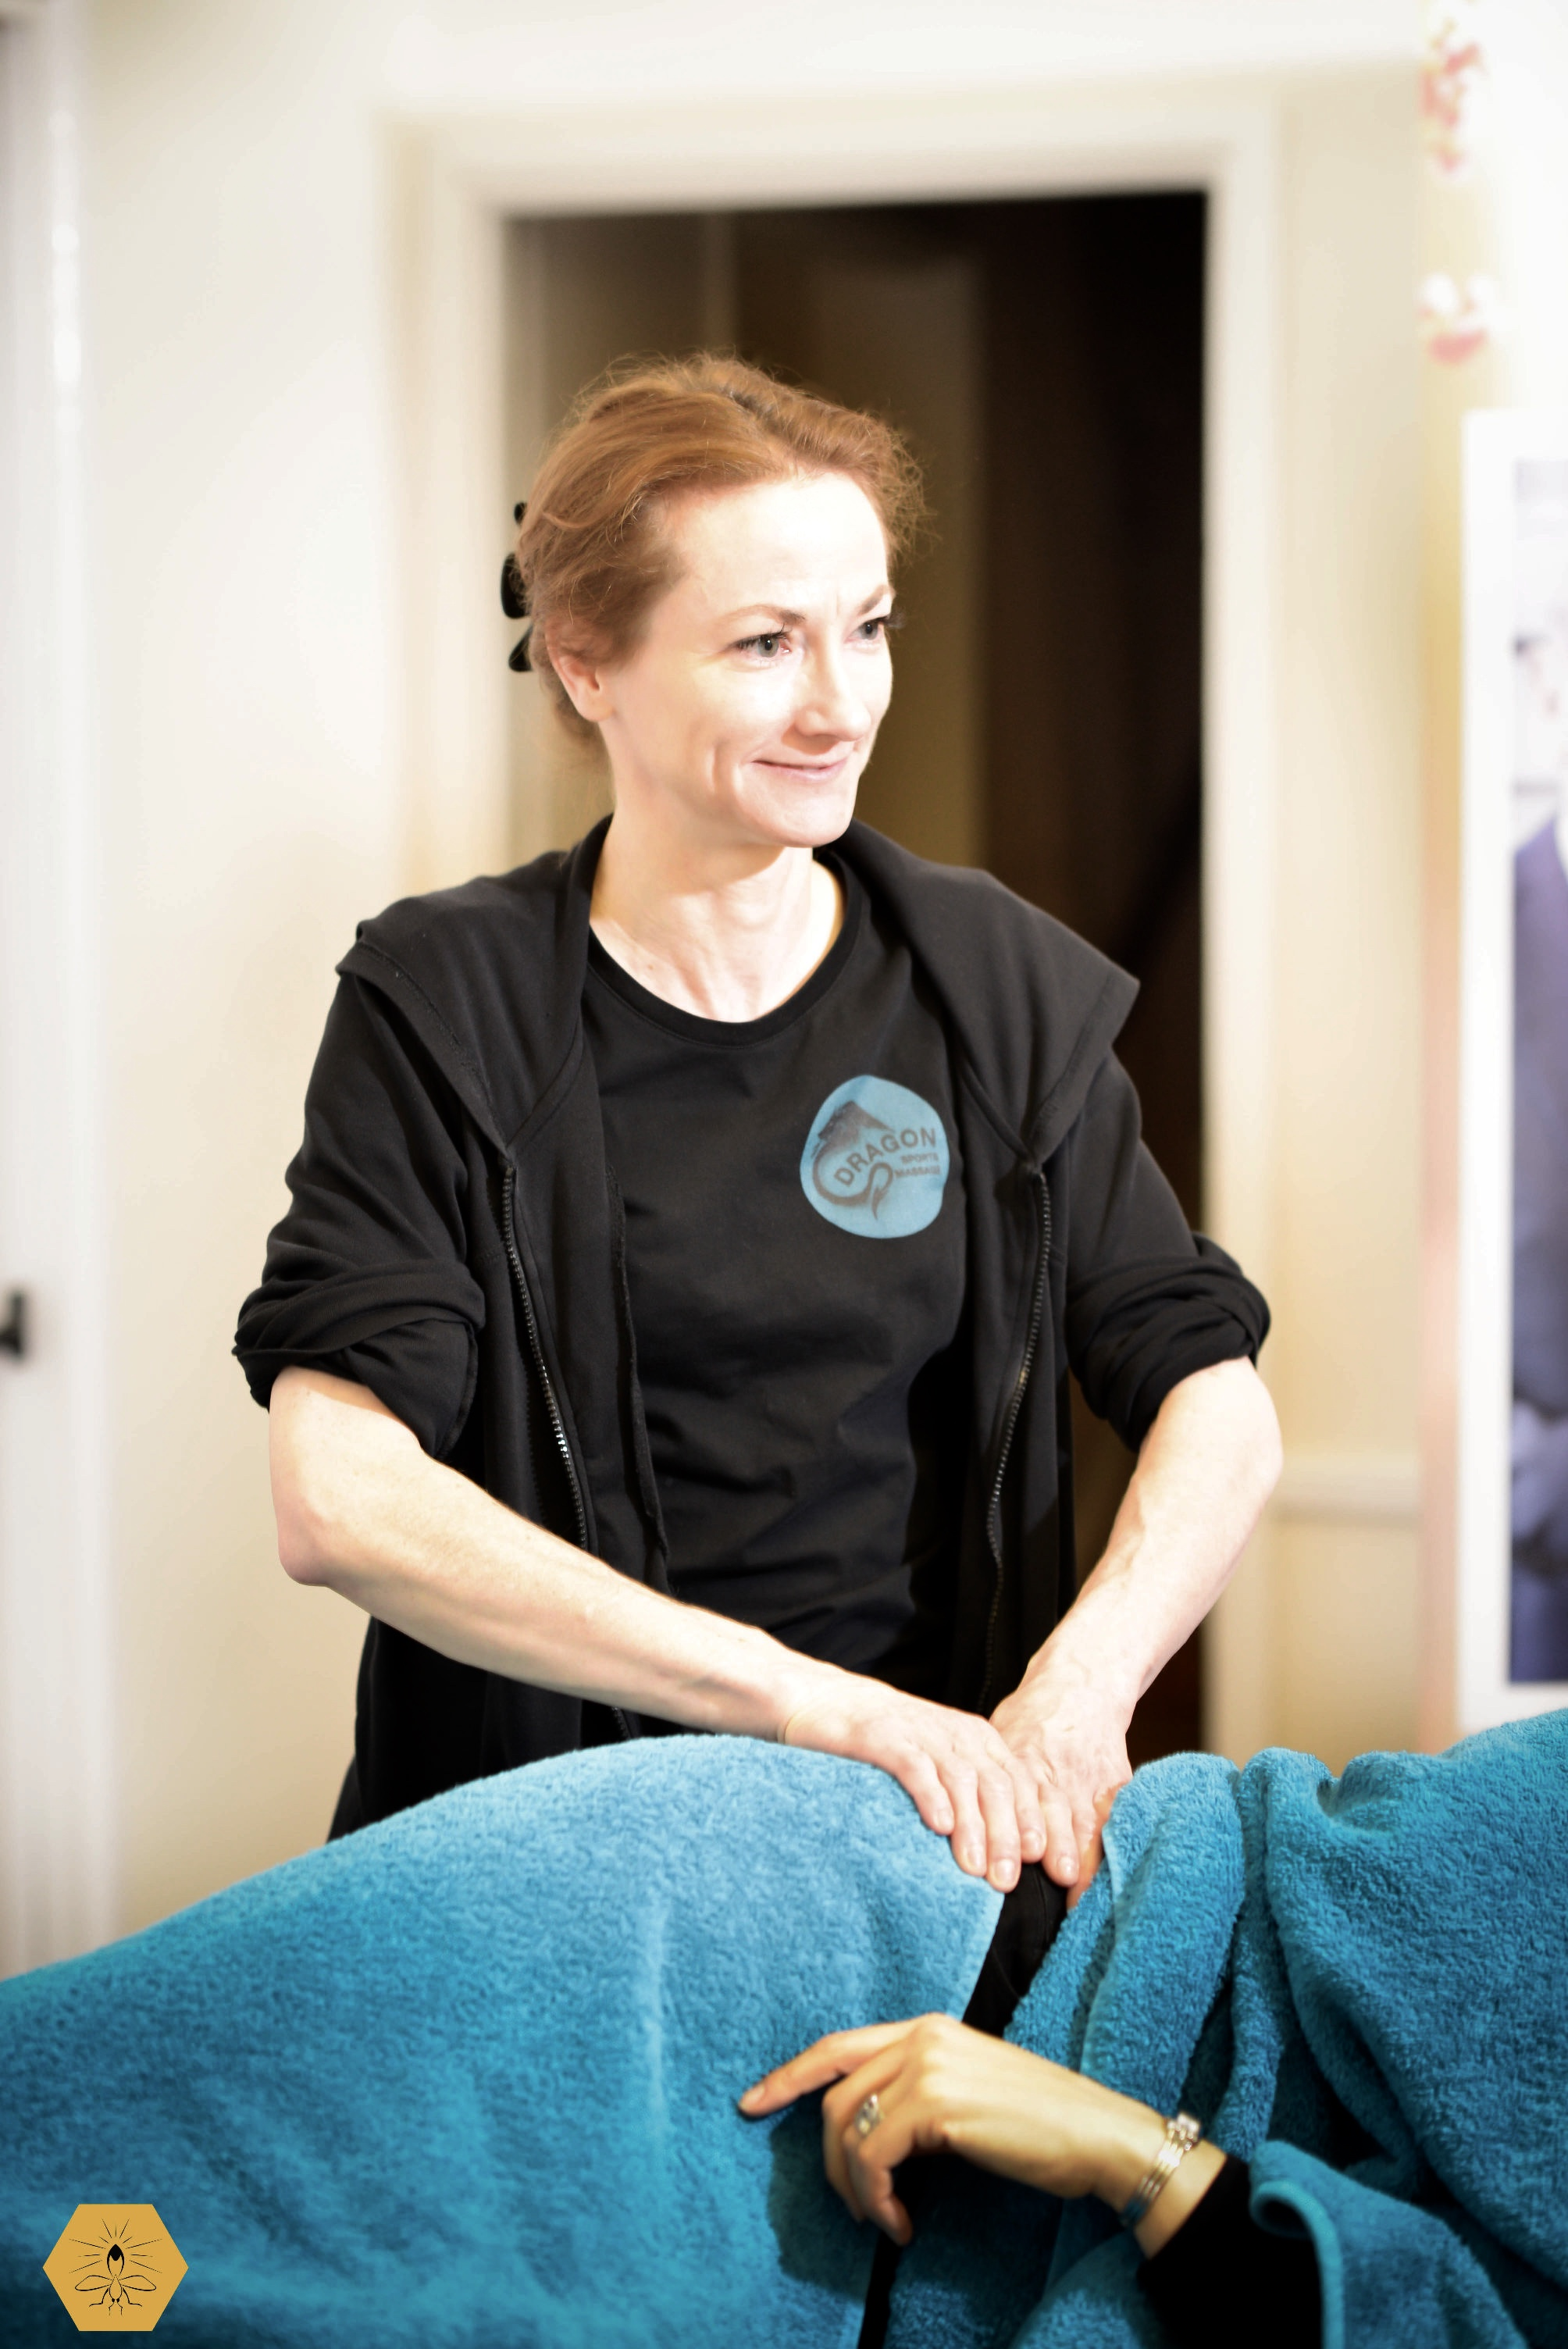 Kelley is pleased to bring her skills in sports and remedial massage to you in your home. When you are in pain, why travel when she will treat you in the comfort of your own home? (within a 35-mile radius of Stratford-upon-Avon). (Photograph by Jay Deeley)